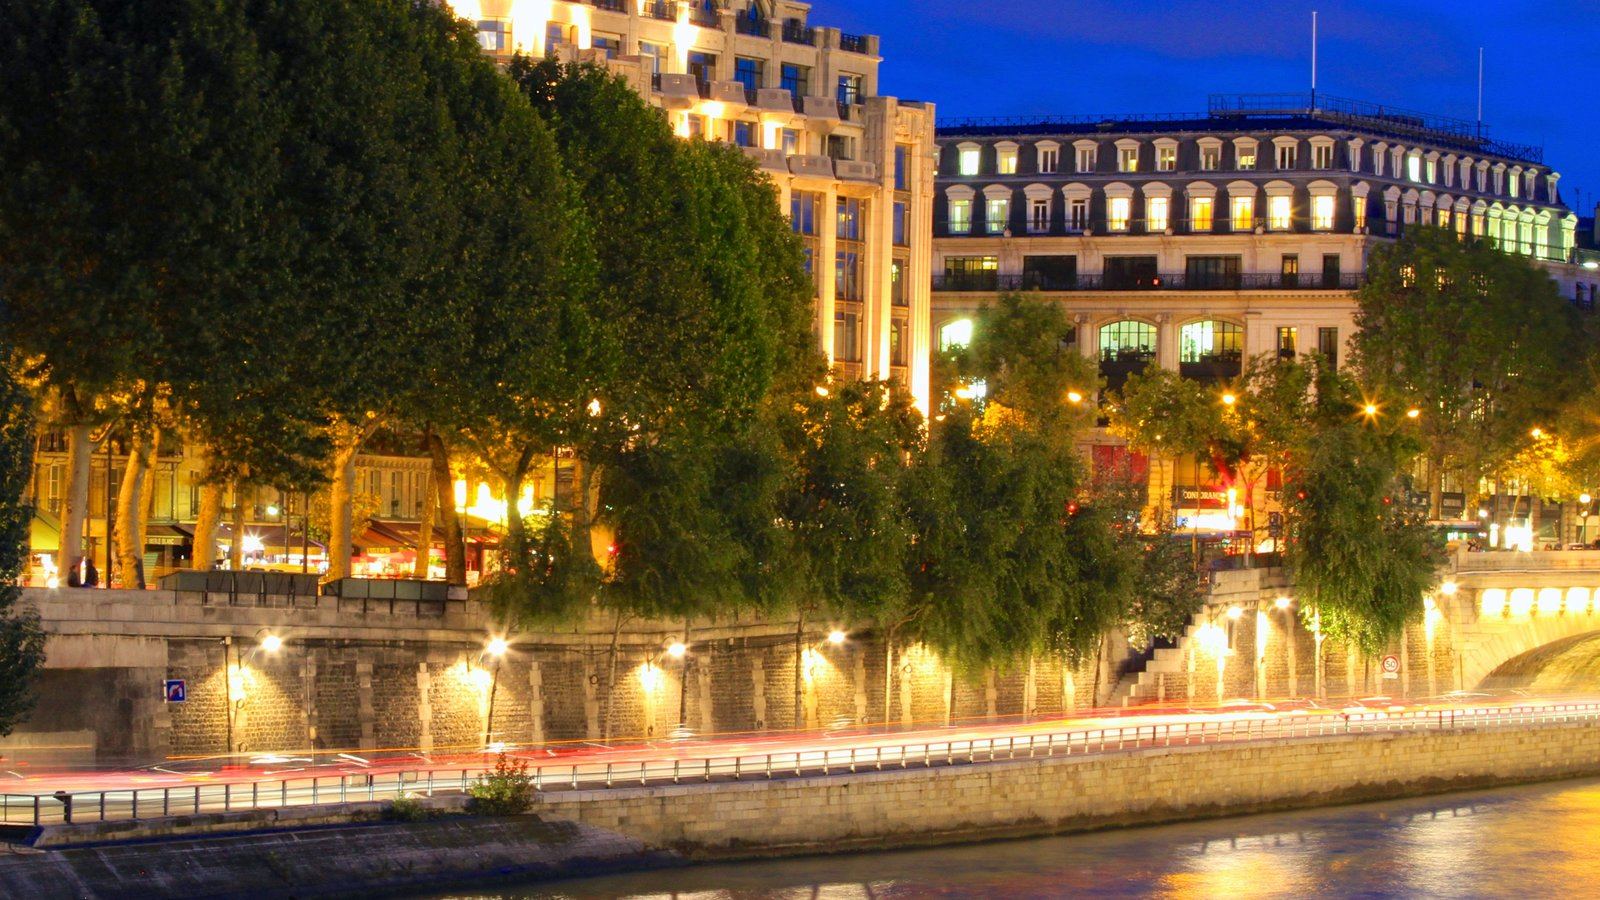 Paris which includes heritage architecture, night scenes and a river or creek